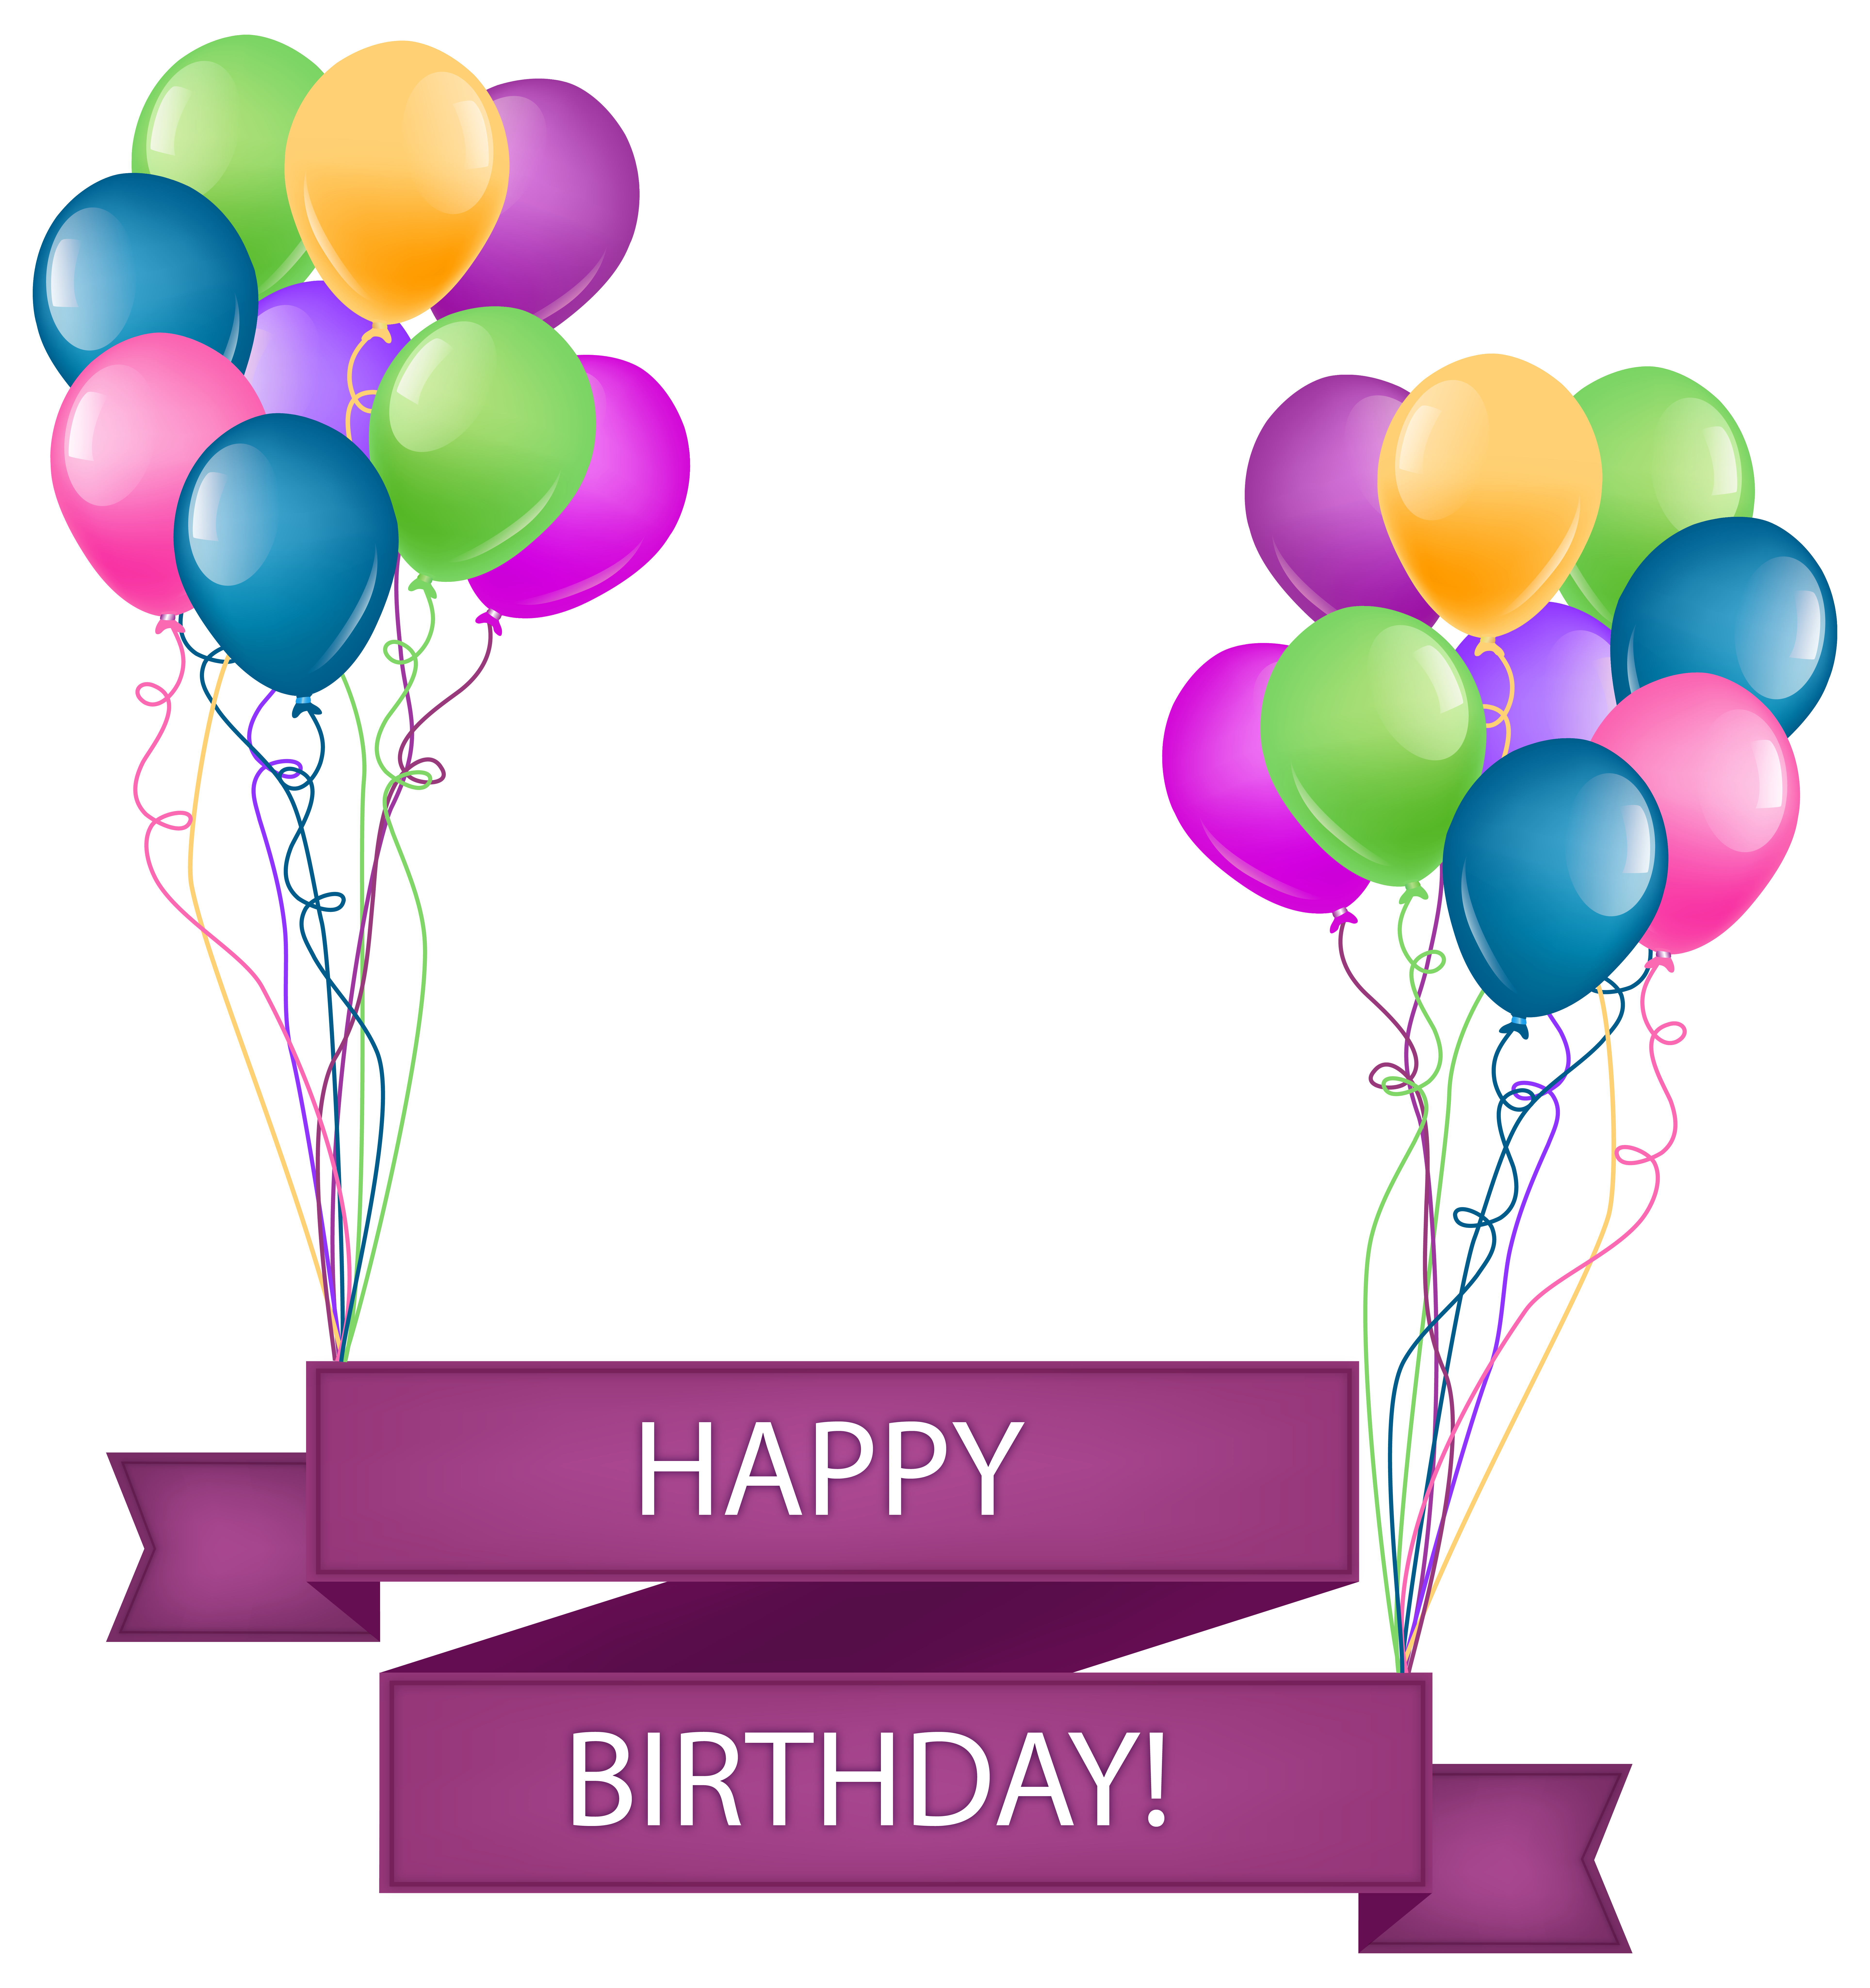 Banner gif png. Happy birthday with balloons